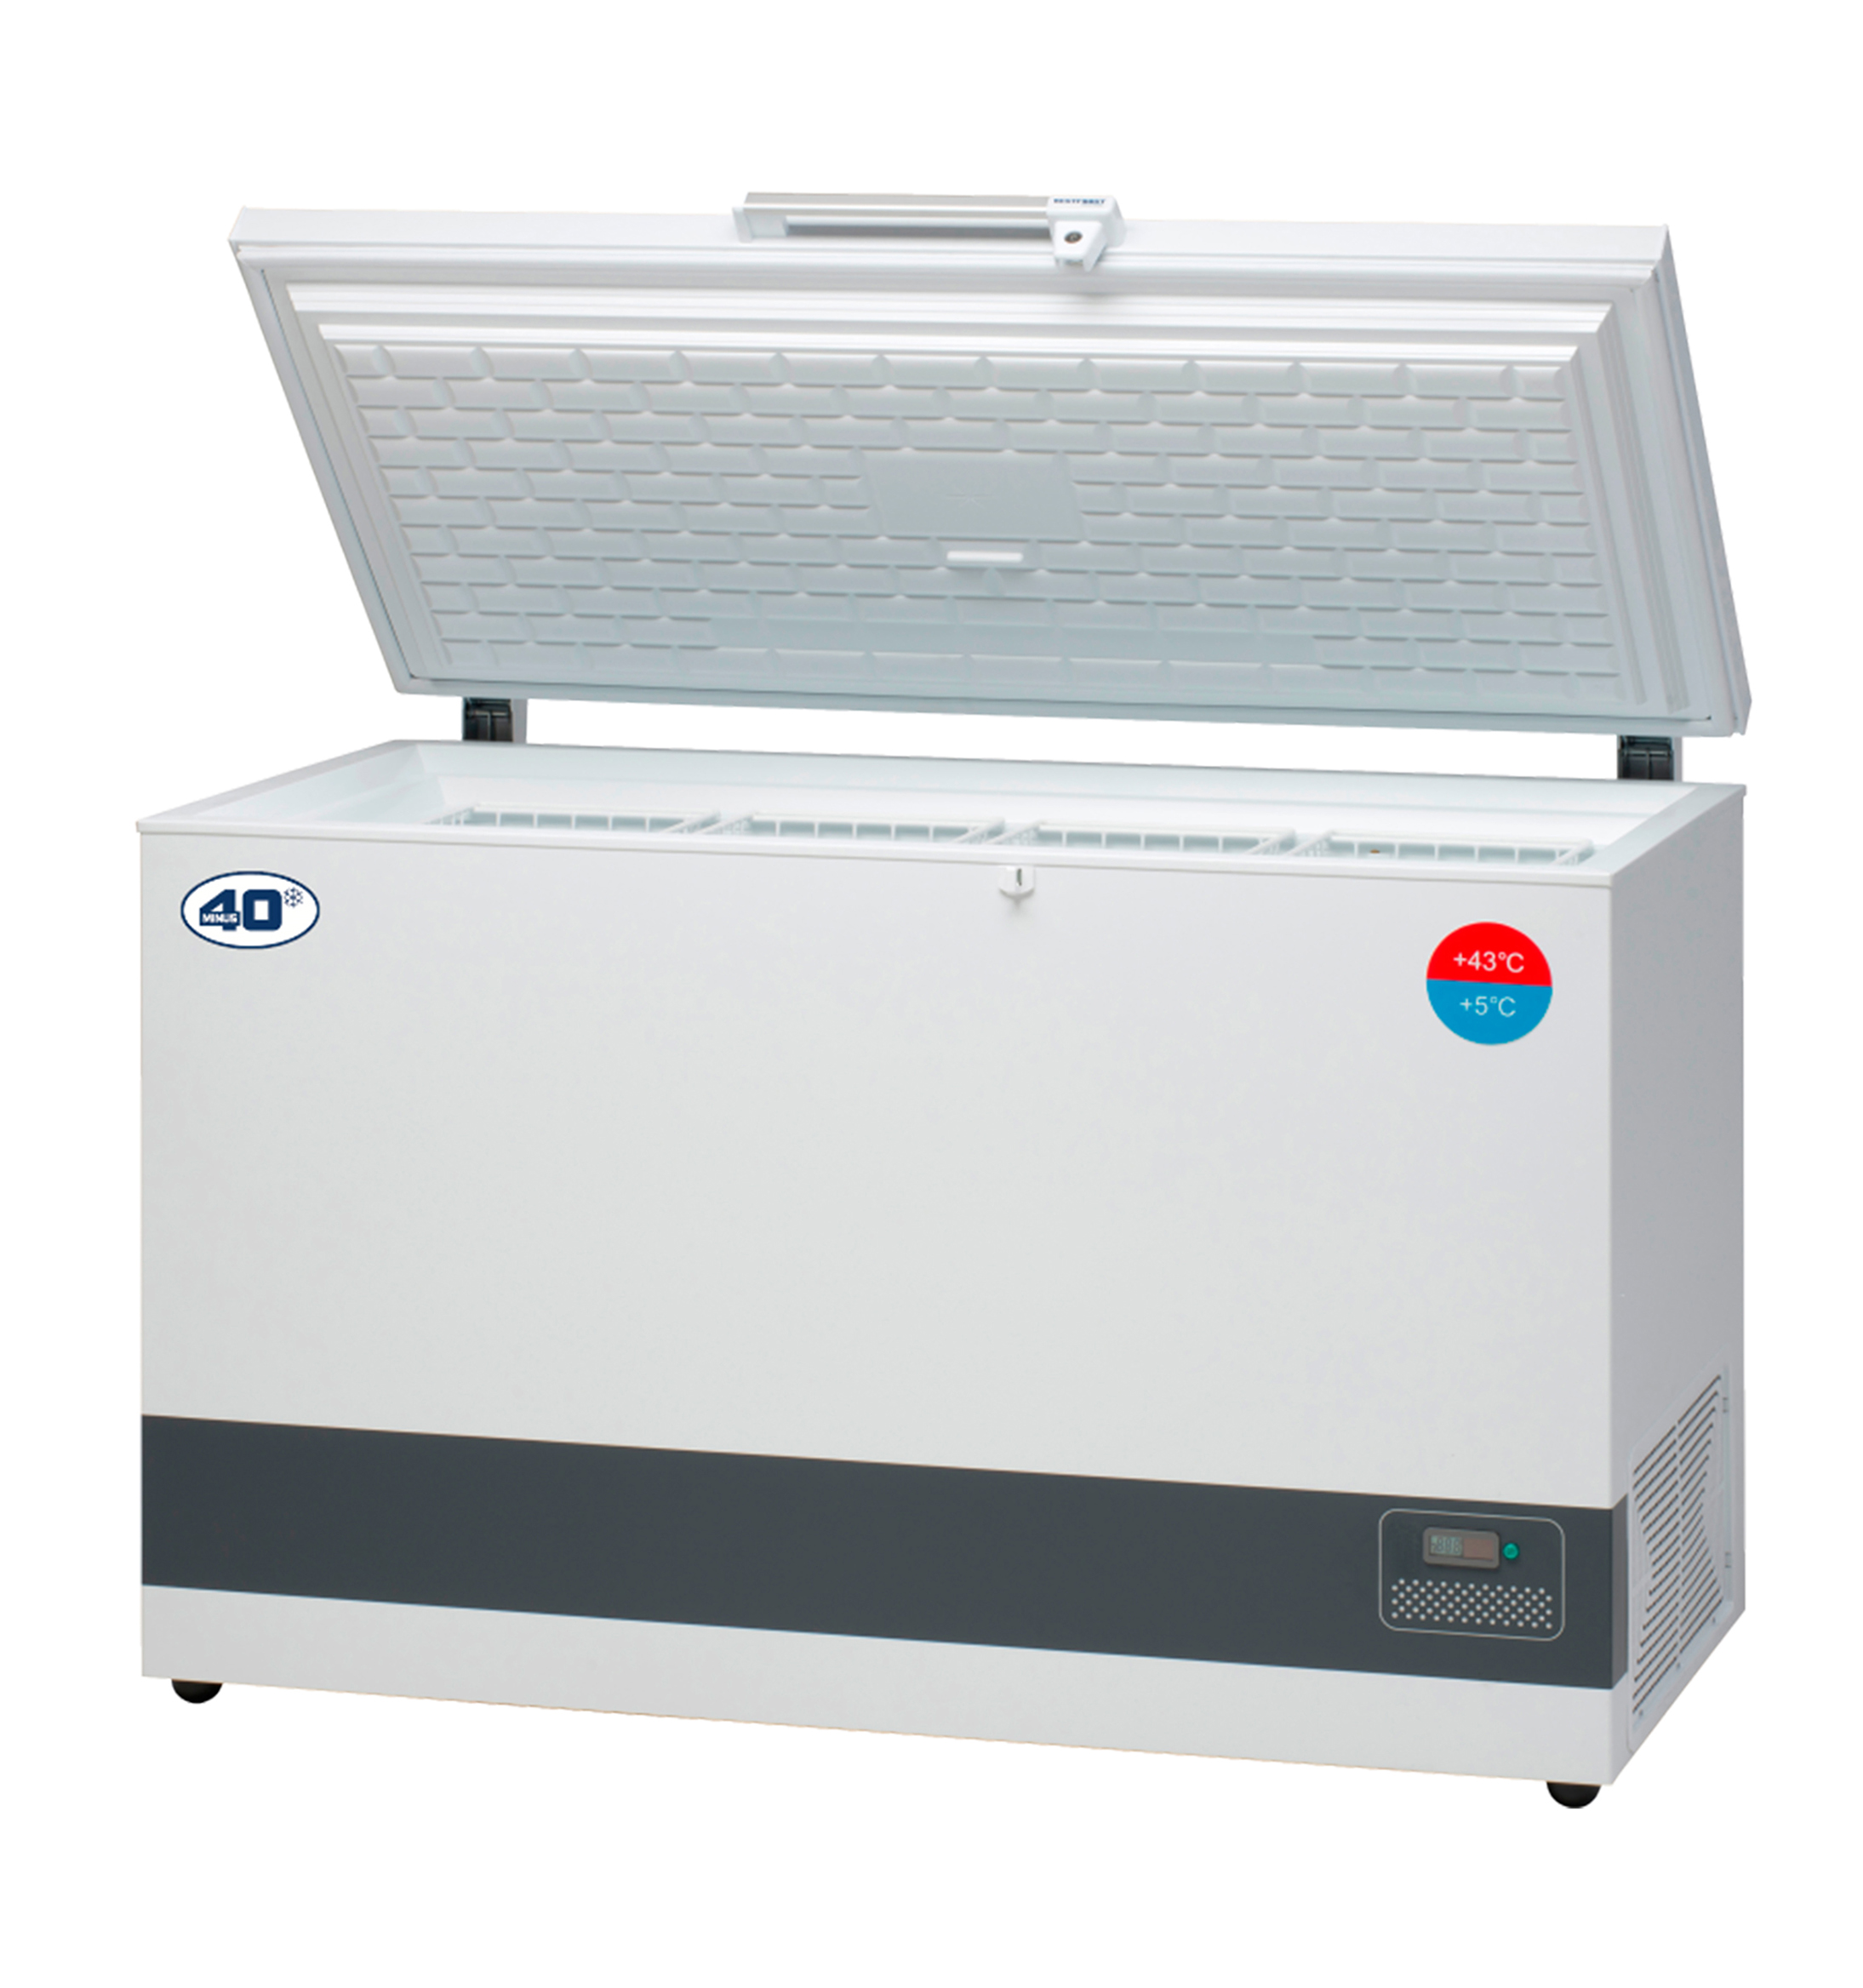 Minus40 Vaccine Refrigerator Vestfrost VLS-350A with logo